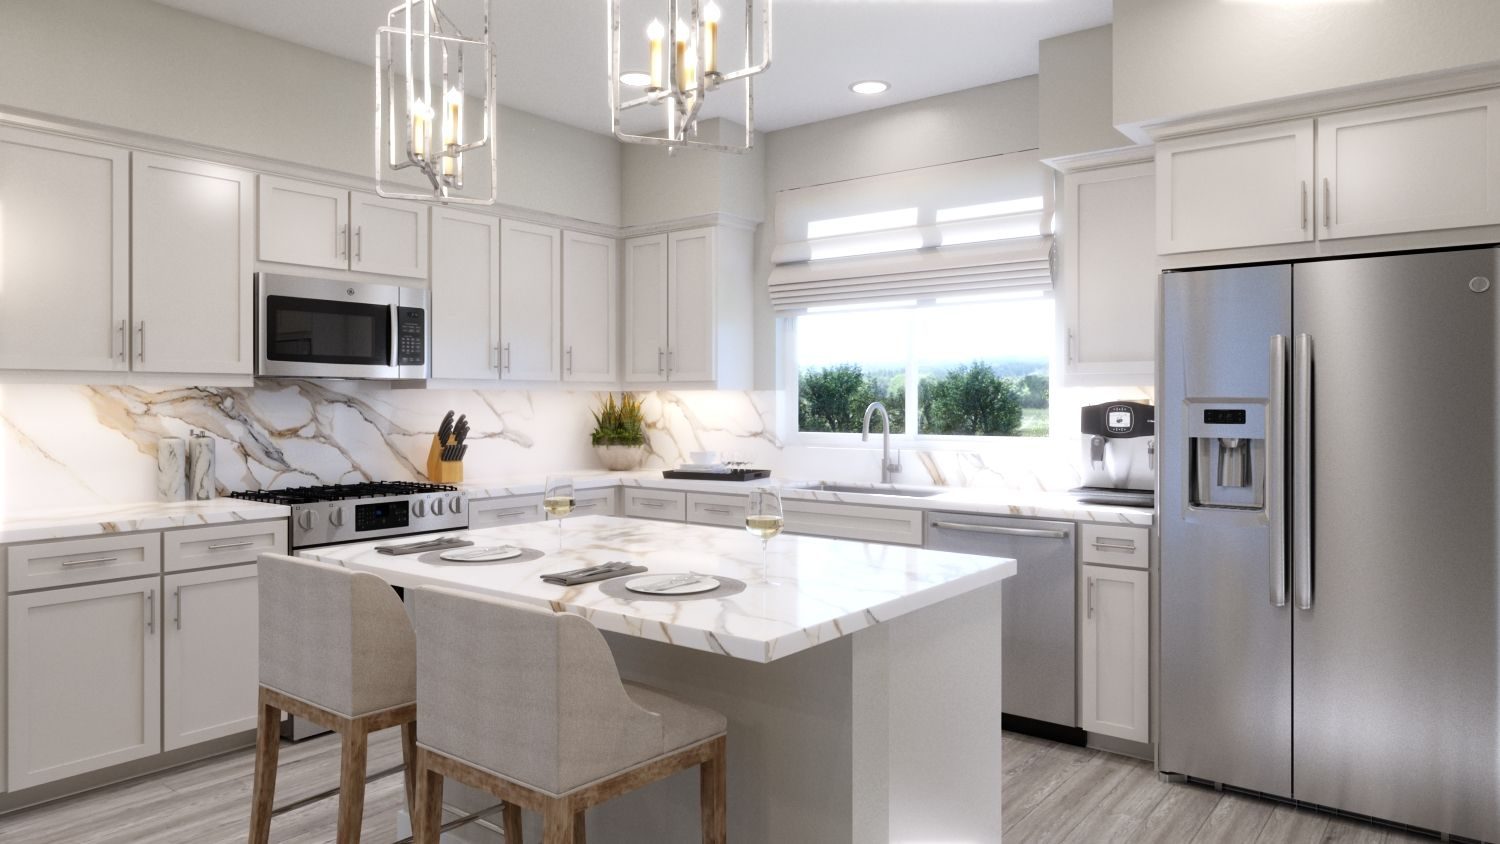 Kitchen featured in the Plan 3A By Melia in Orange County, CA